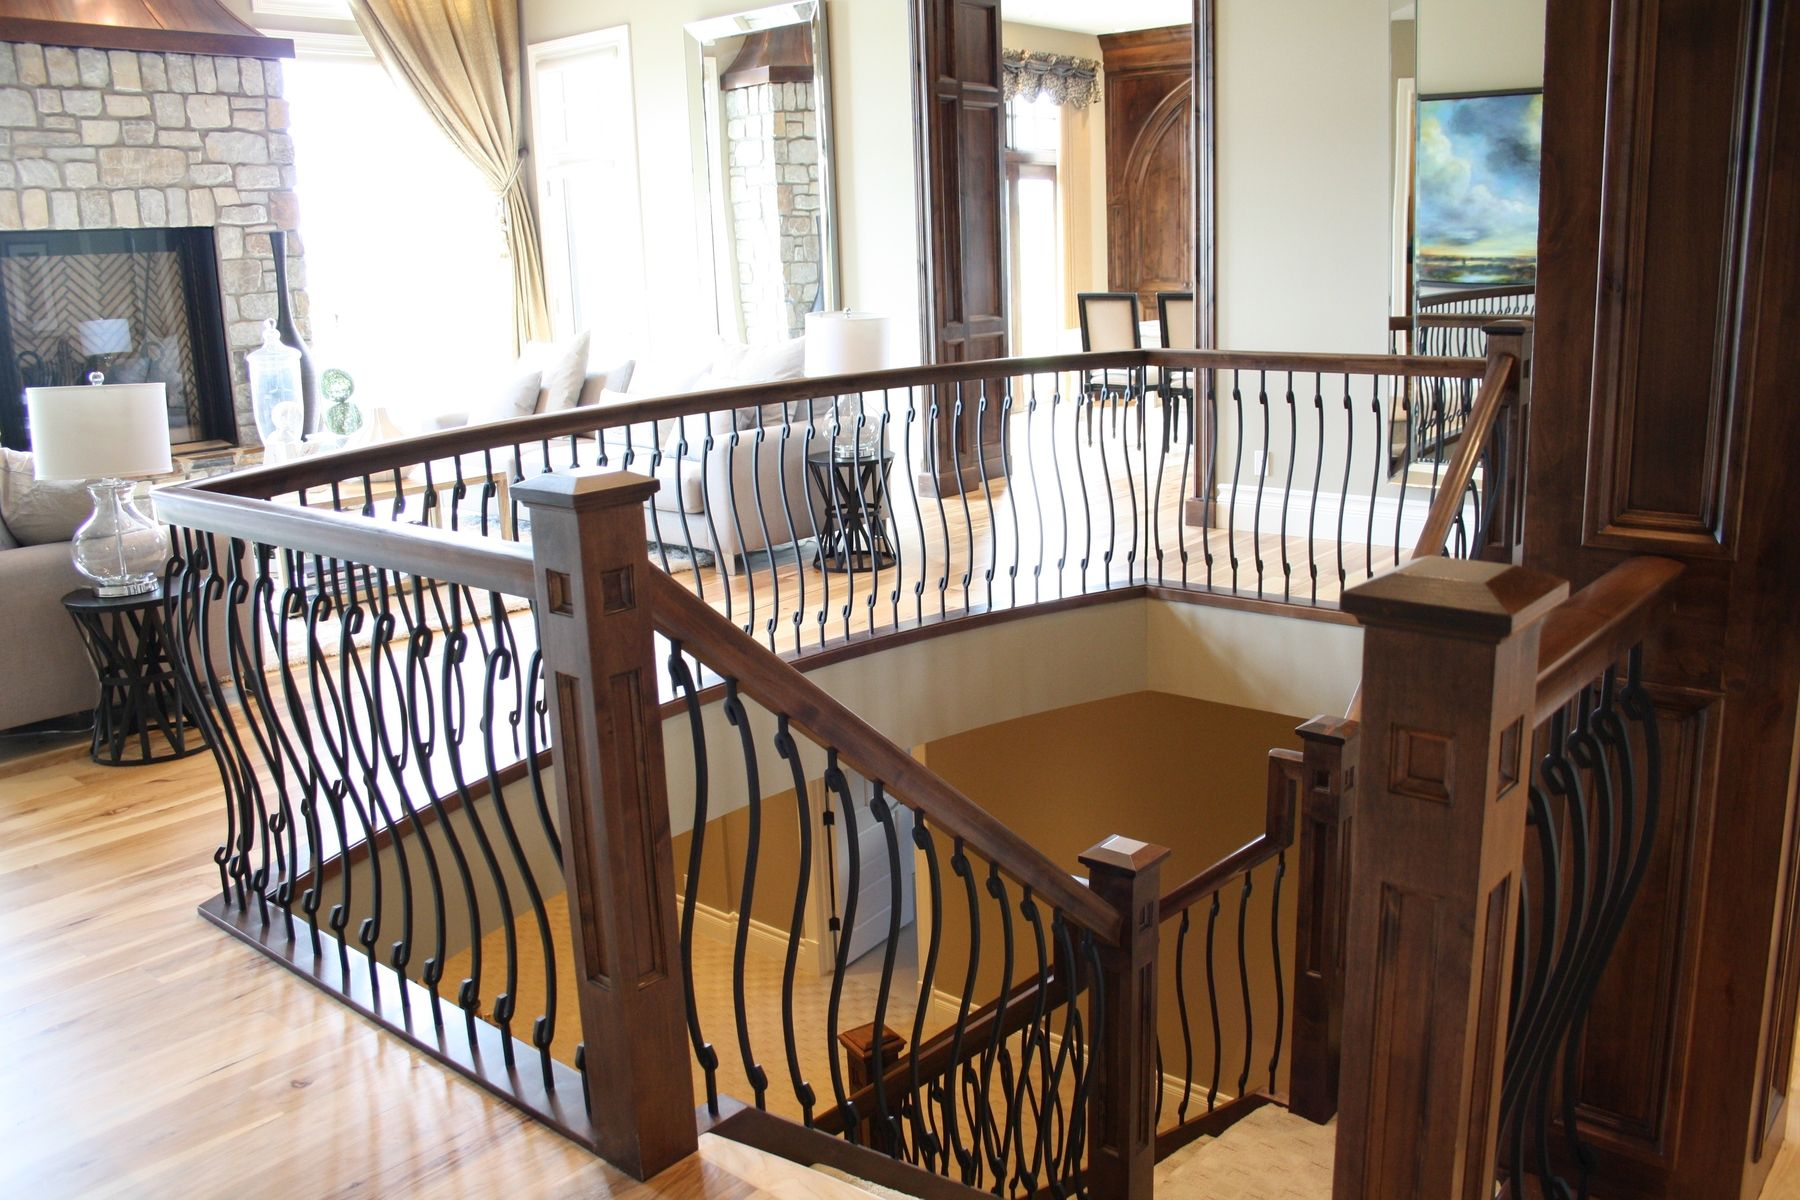 Best Metal Balusters For Stairs Wood Stair Rail With S Shaped 400 x 300